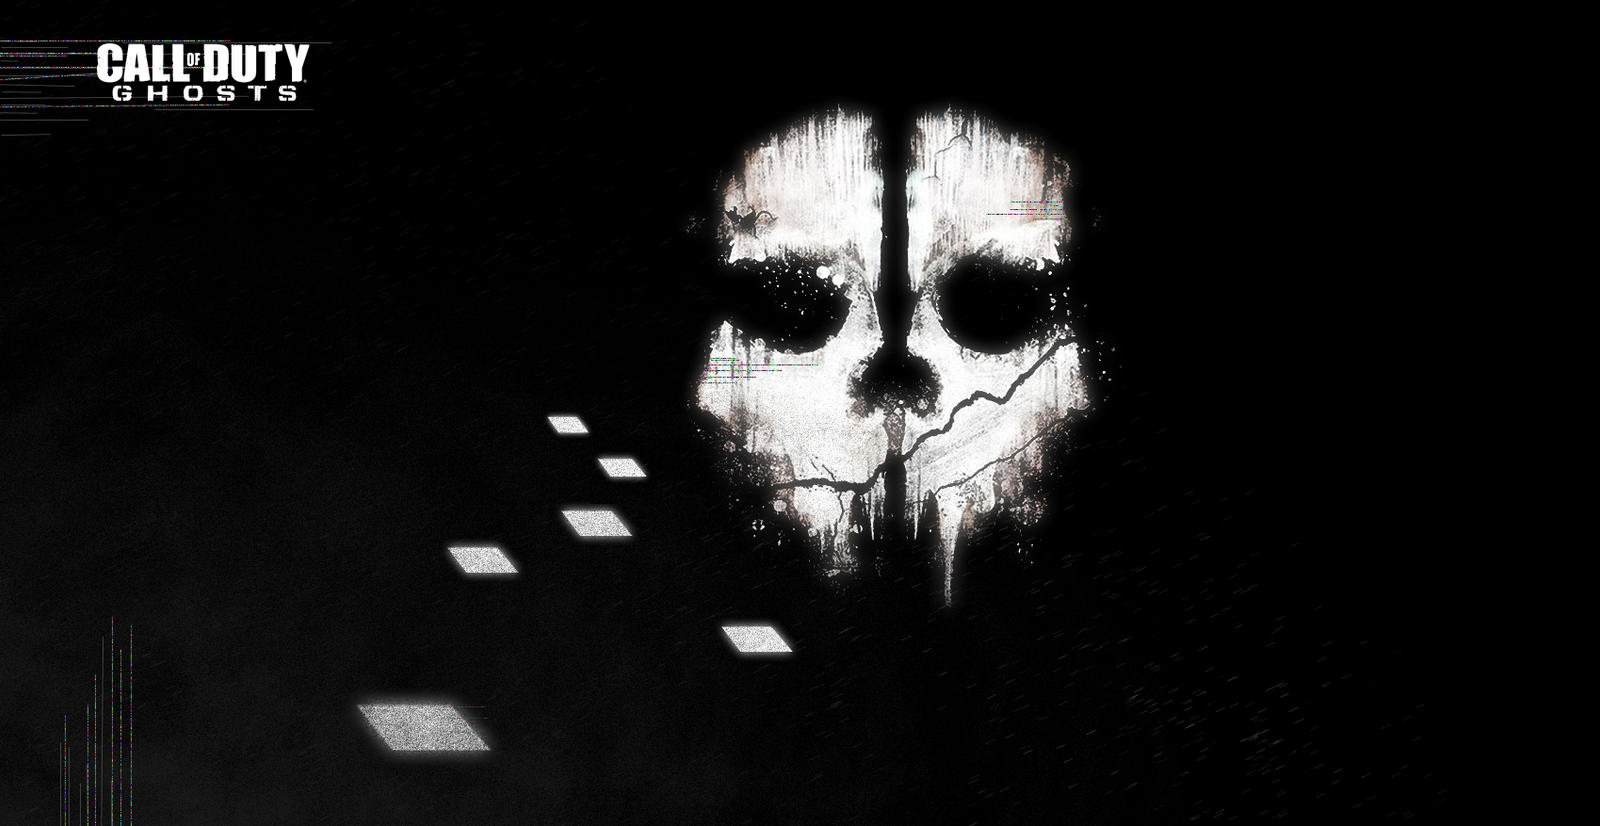 call of duty ghosts wallpaper by kristianoconnell on